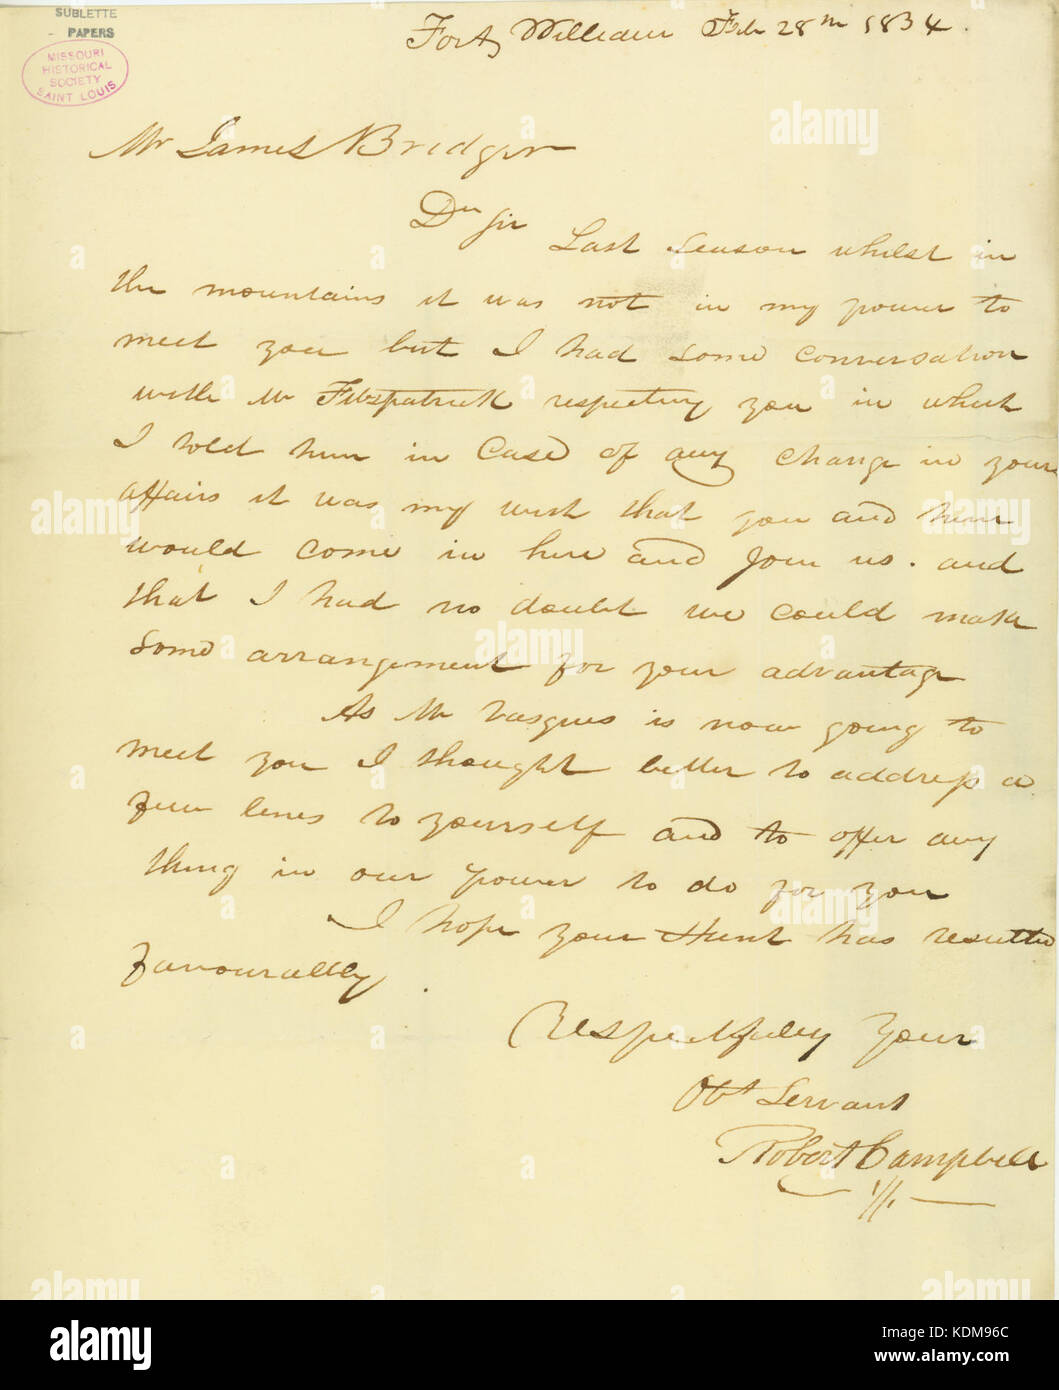 Letter from Robert Campbell, Fort William, to James Bridger, Rocky Mountains, February 28, 1834 - Stock Image